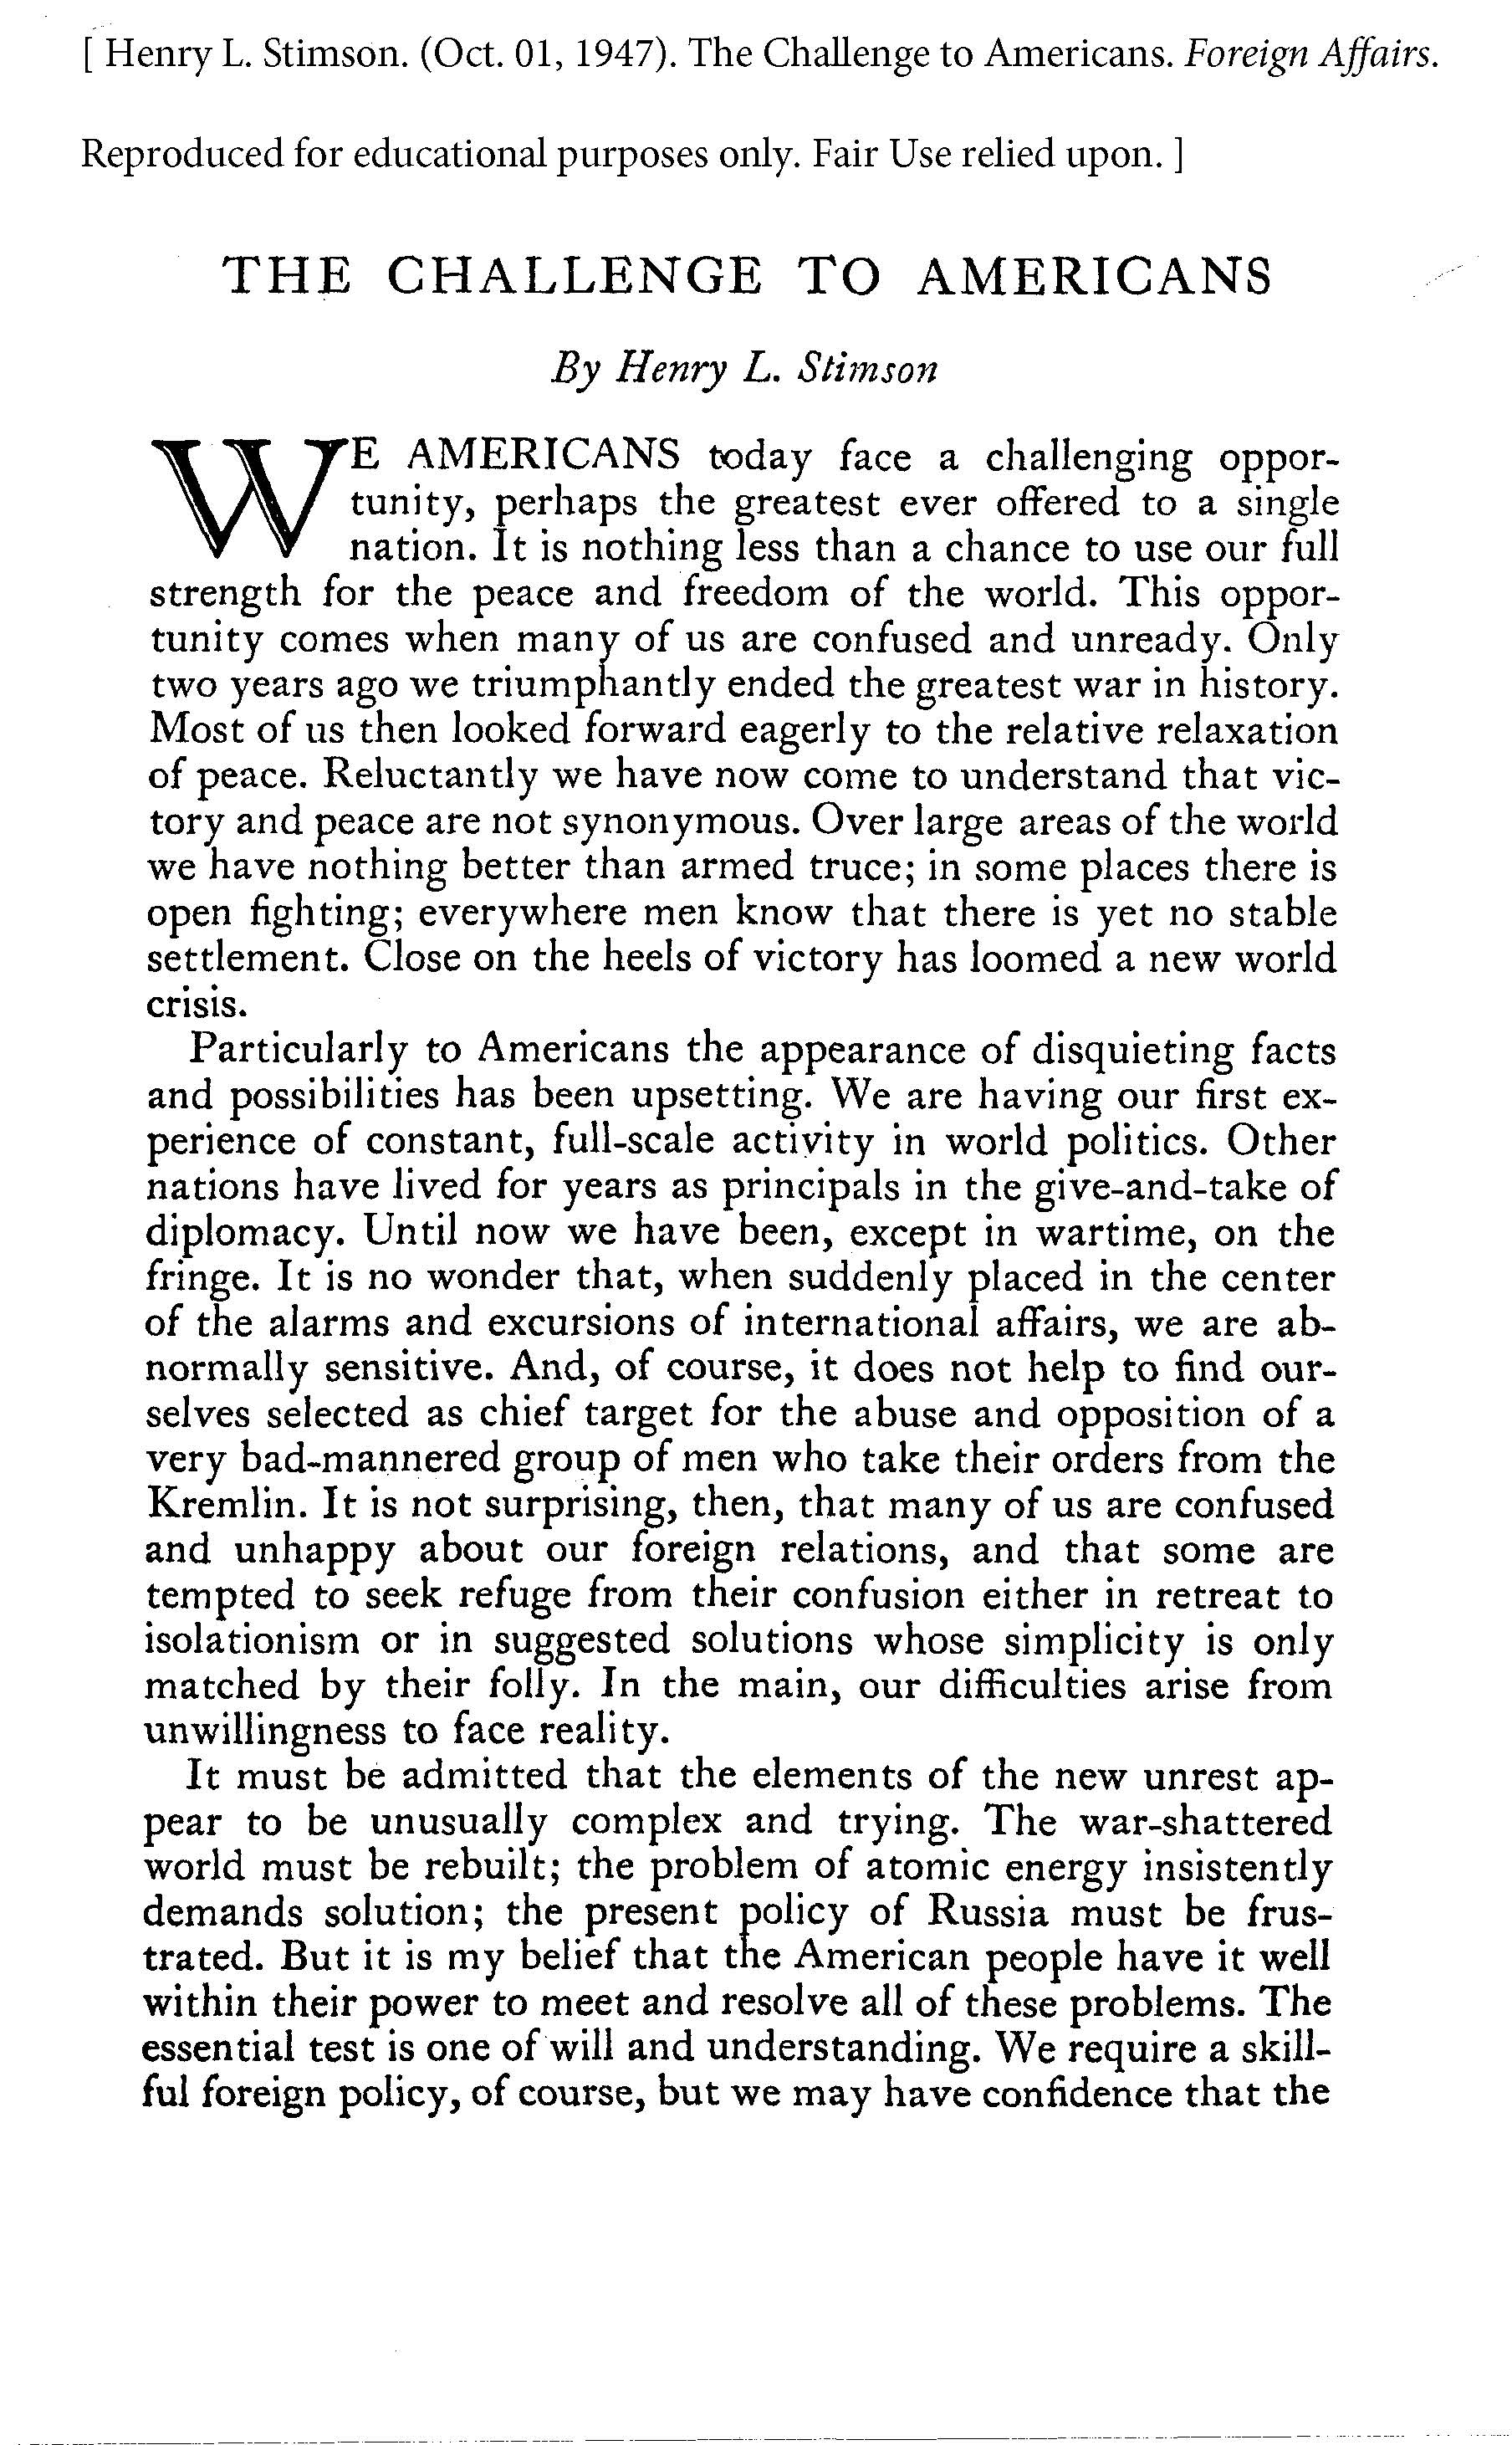 Pages from 1947-10-01-The-Challenge-to-Americans-by-Henry-L-Stimson-Foreign-Affairs-Oct-01-1947